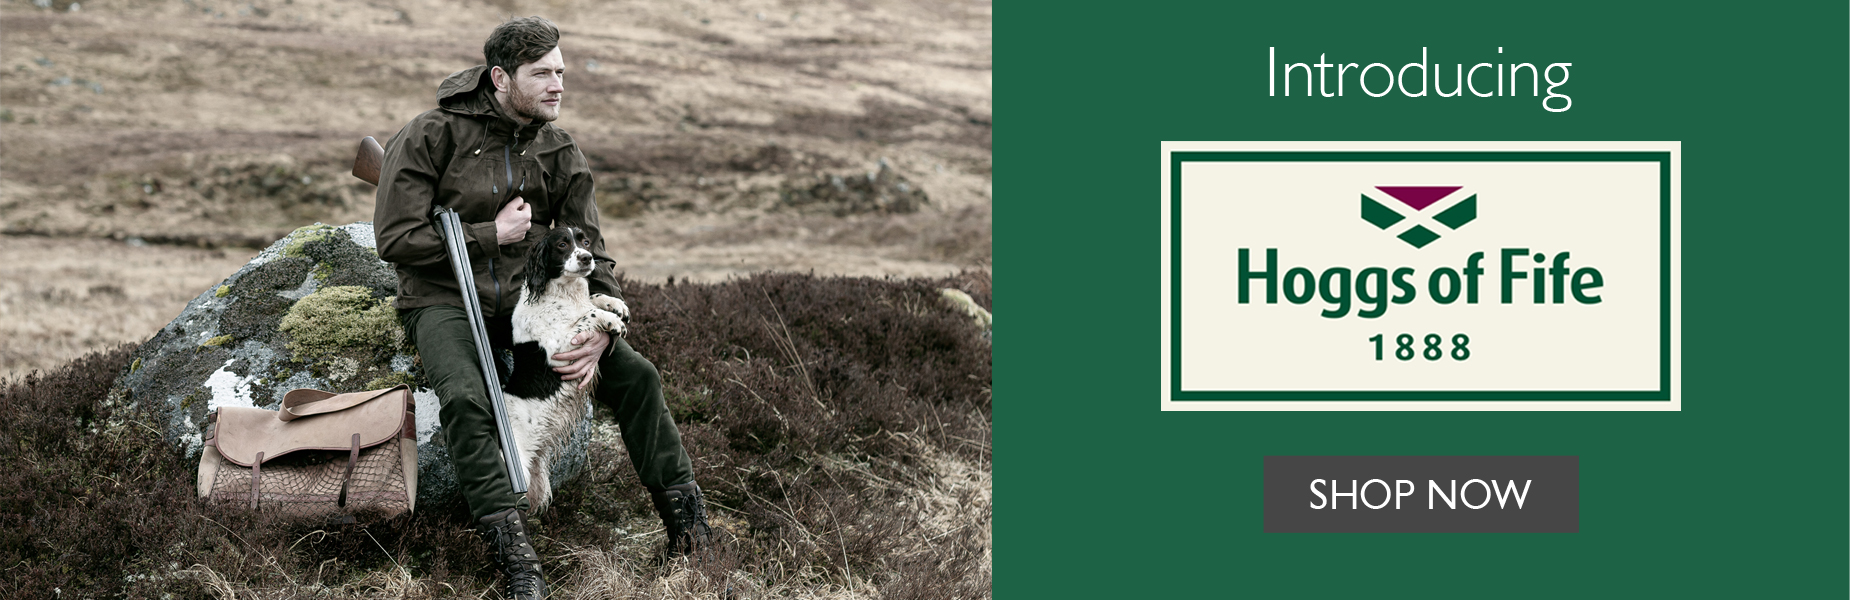 Introducing Hoggs of Fife   Shop Now